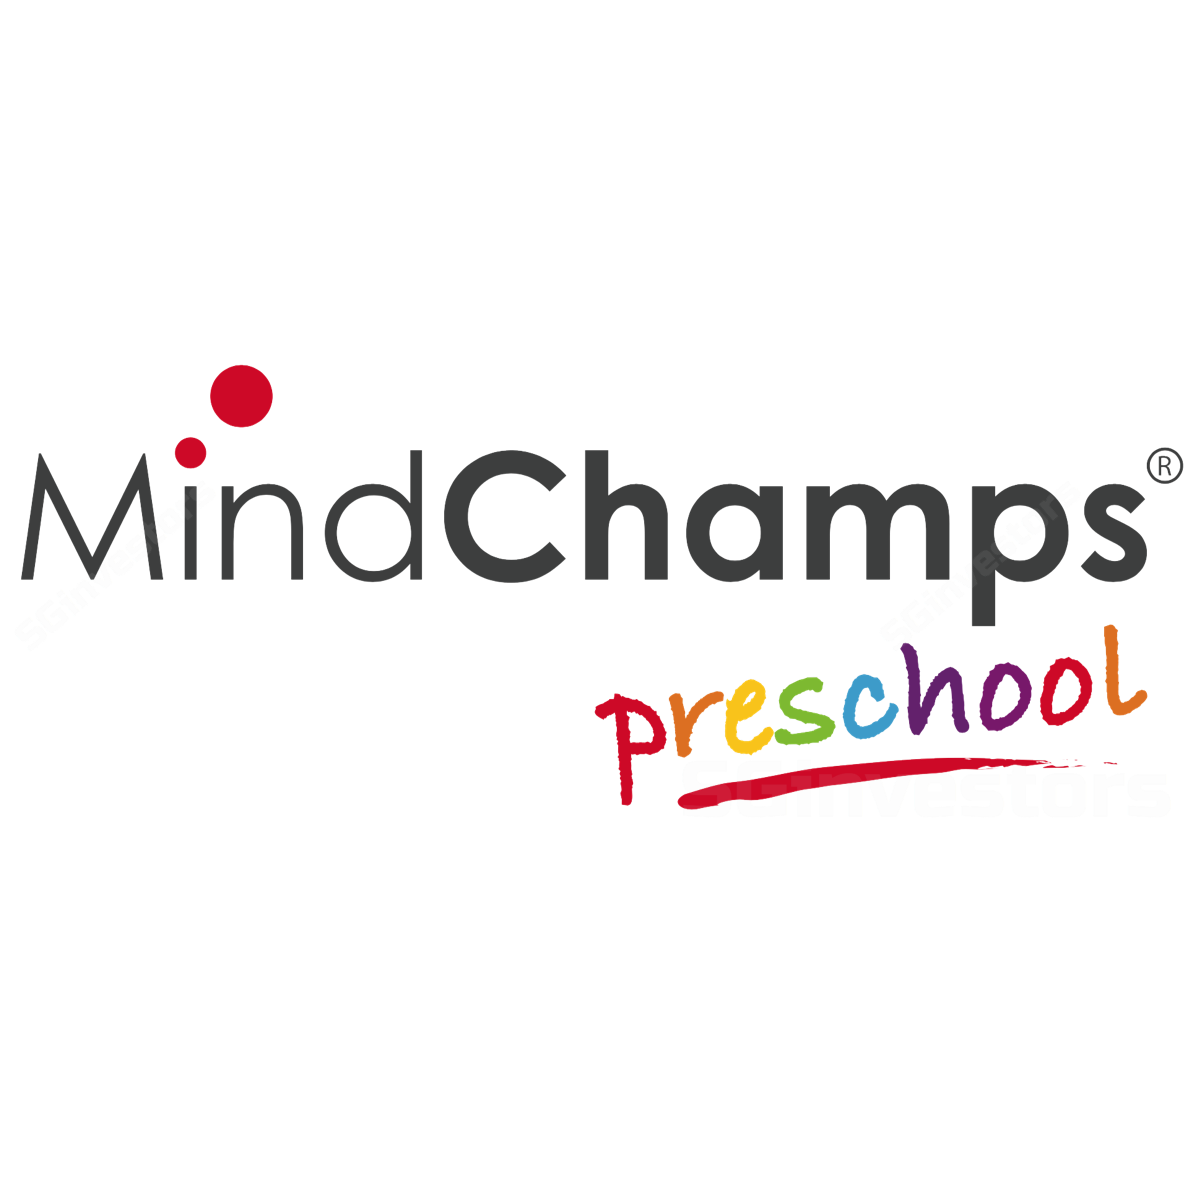 MindChamps Preschool - RHB Invest 2018-05-09: Ramping Up For Growth